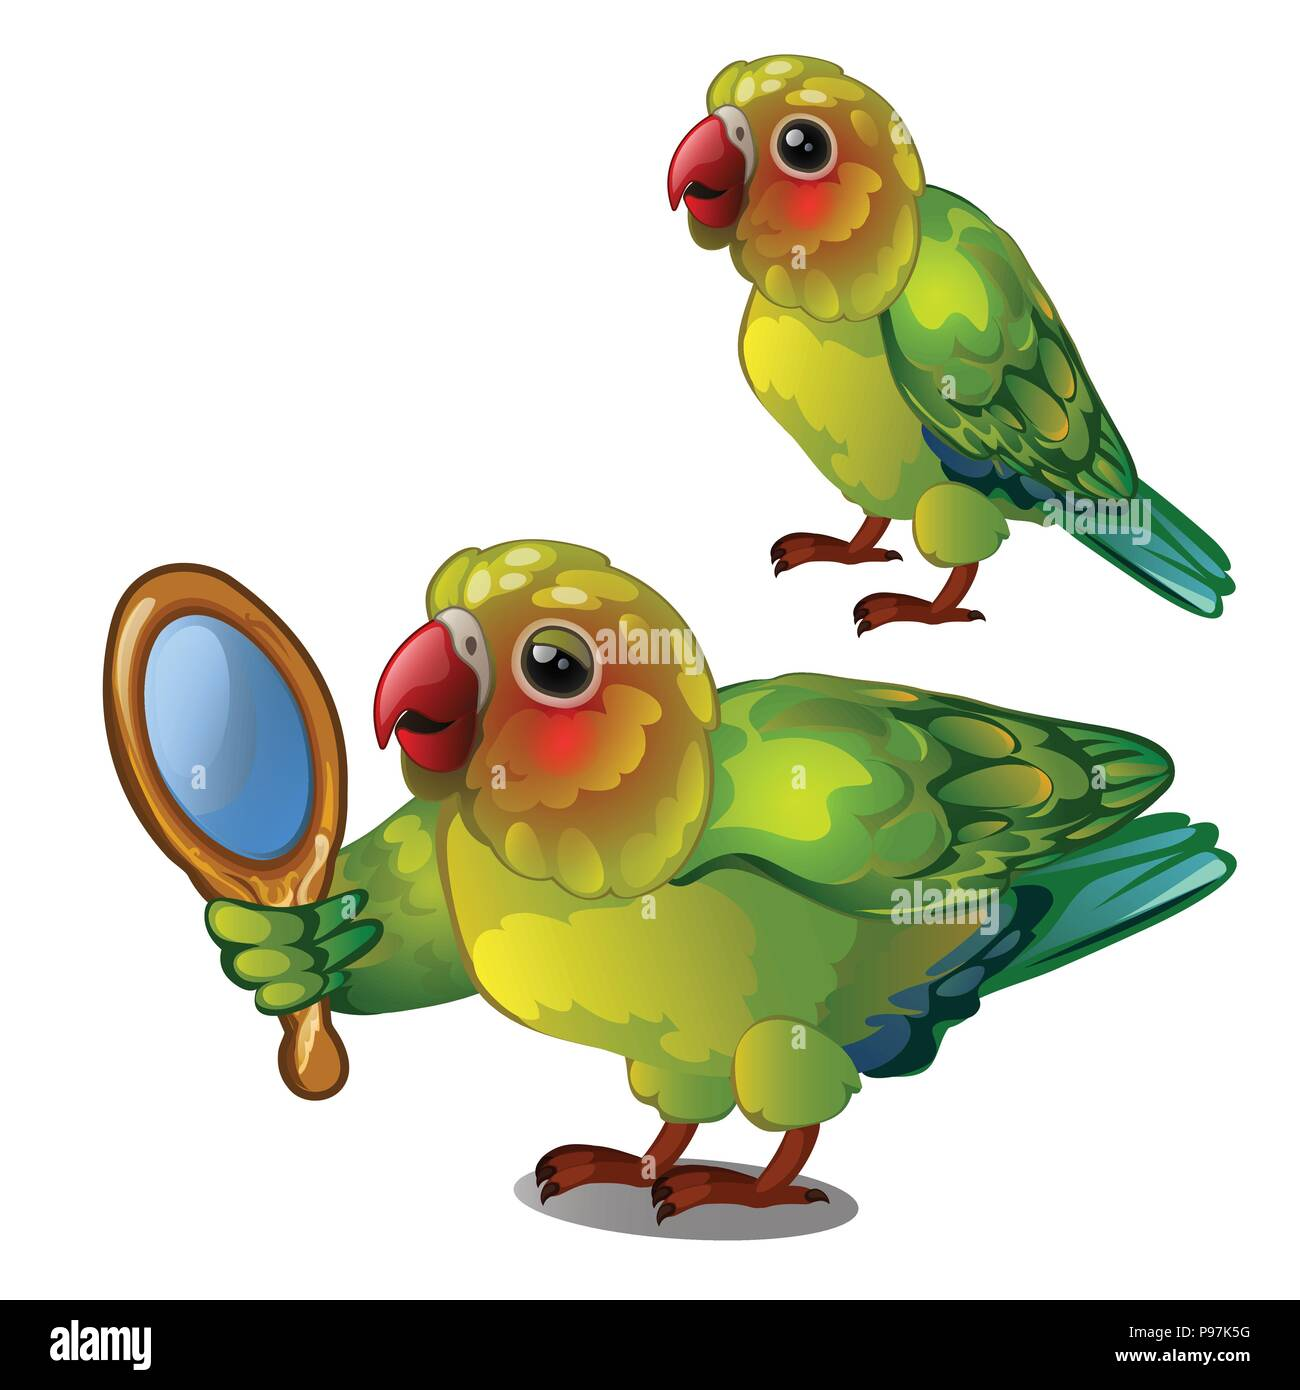 Parrot lovebird admiring her own reflection in the mirror. Tropical tamed bird is isolated on a white background. Animated vector illustration. - Stock Image